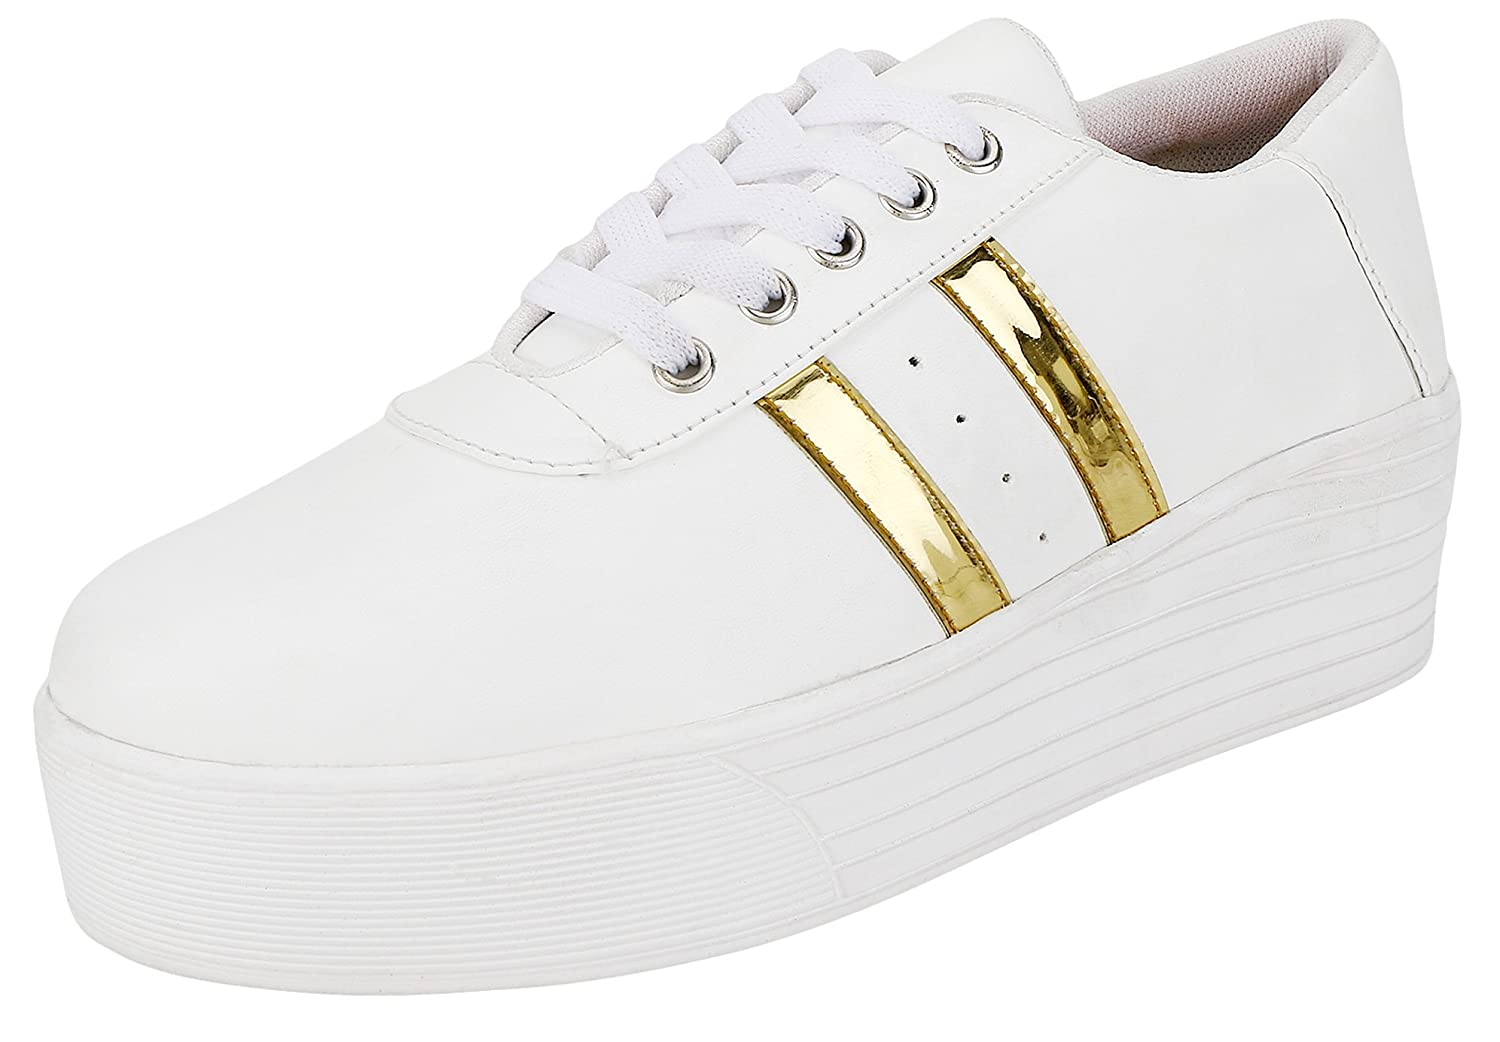 8358e4ac43f Maddy White Gold Sneaker Shoes for Women in Various Sizes